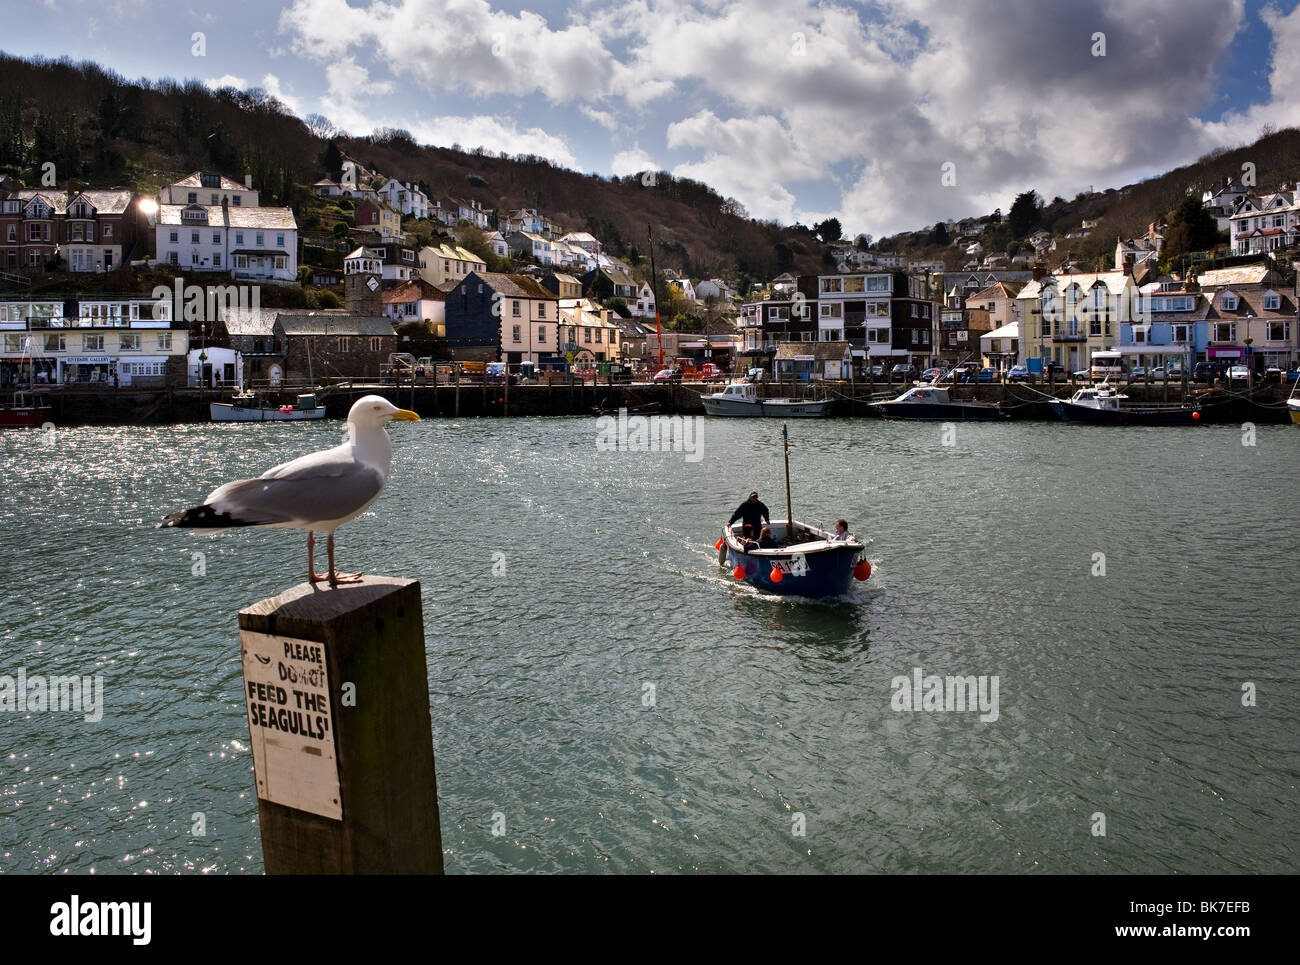 The passenger ferry crossing the River Looe in Cornwall.  Photo by Gordon Scammell - Stock Image